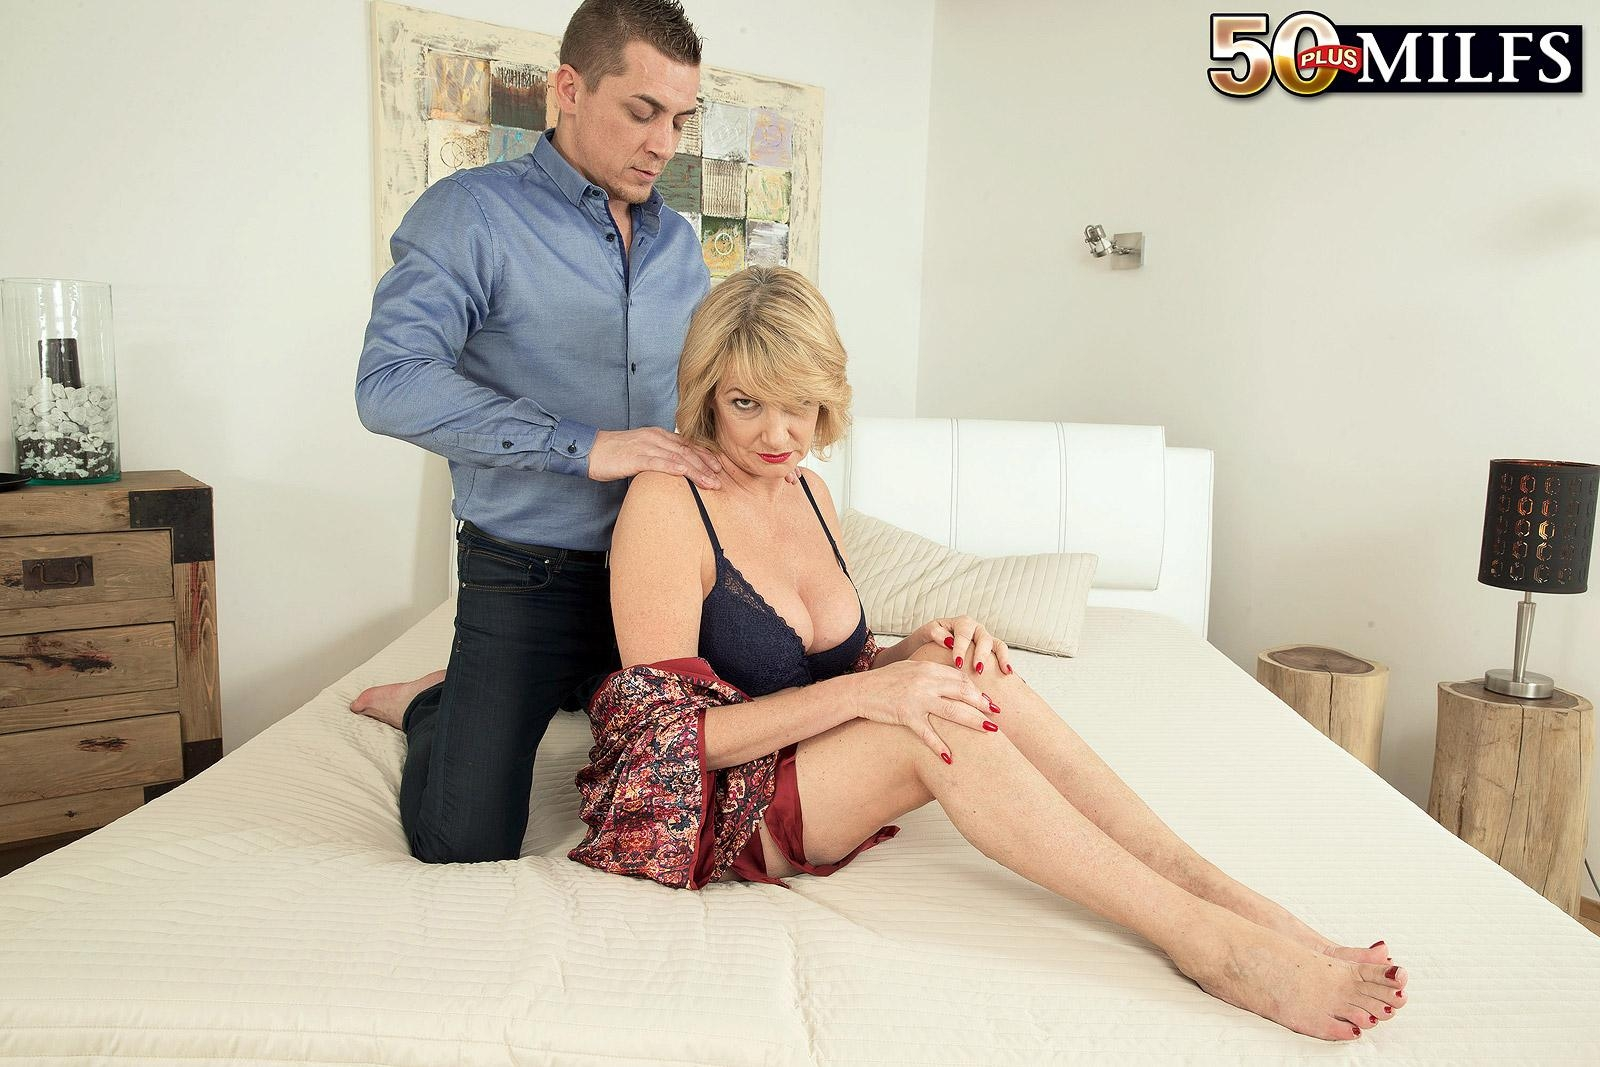 Mature blonde lady Amy goes topless after being fed berries and receiving a neck rub